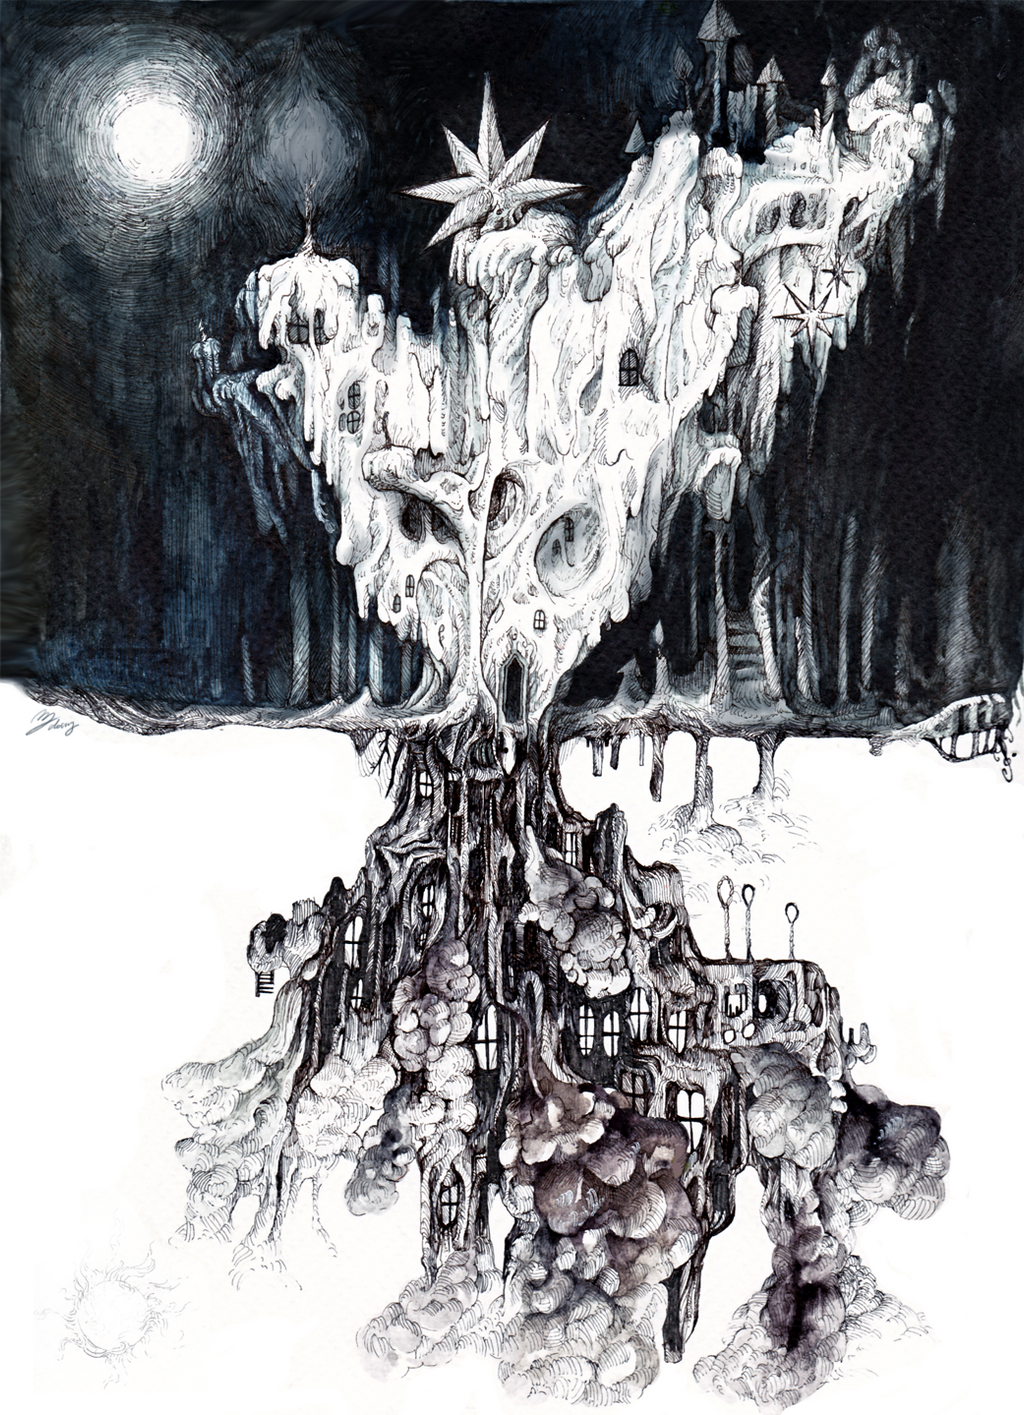 [ The residence of white wax and soot ] by doming92